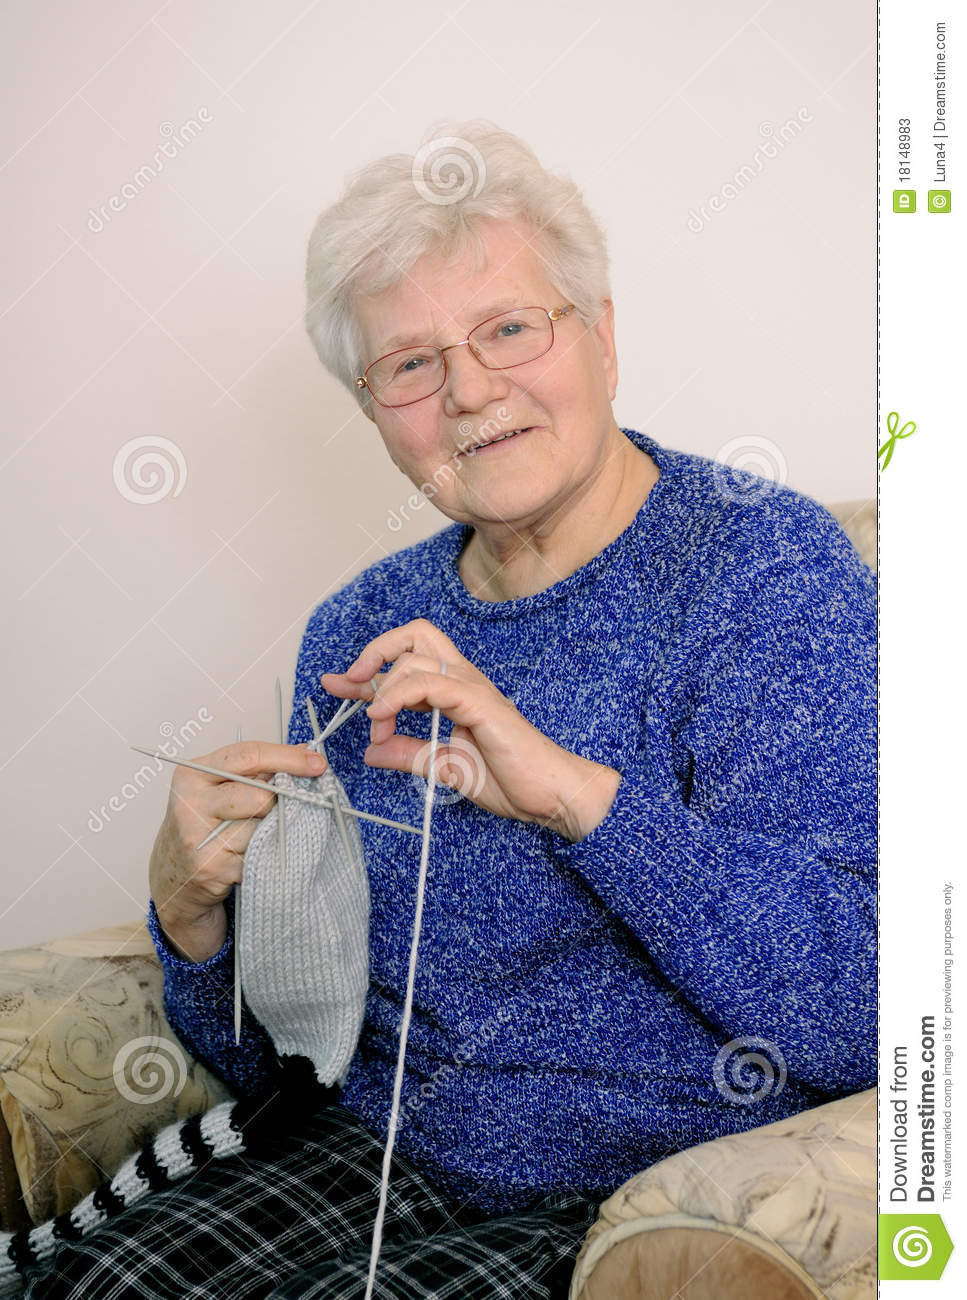 Old Lady Knitting Images : Elderly woman knitting stock image of sitting